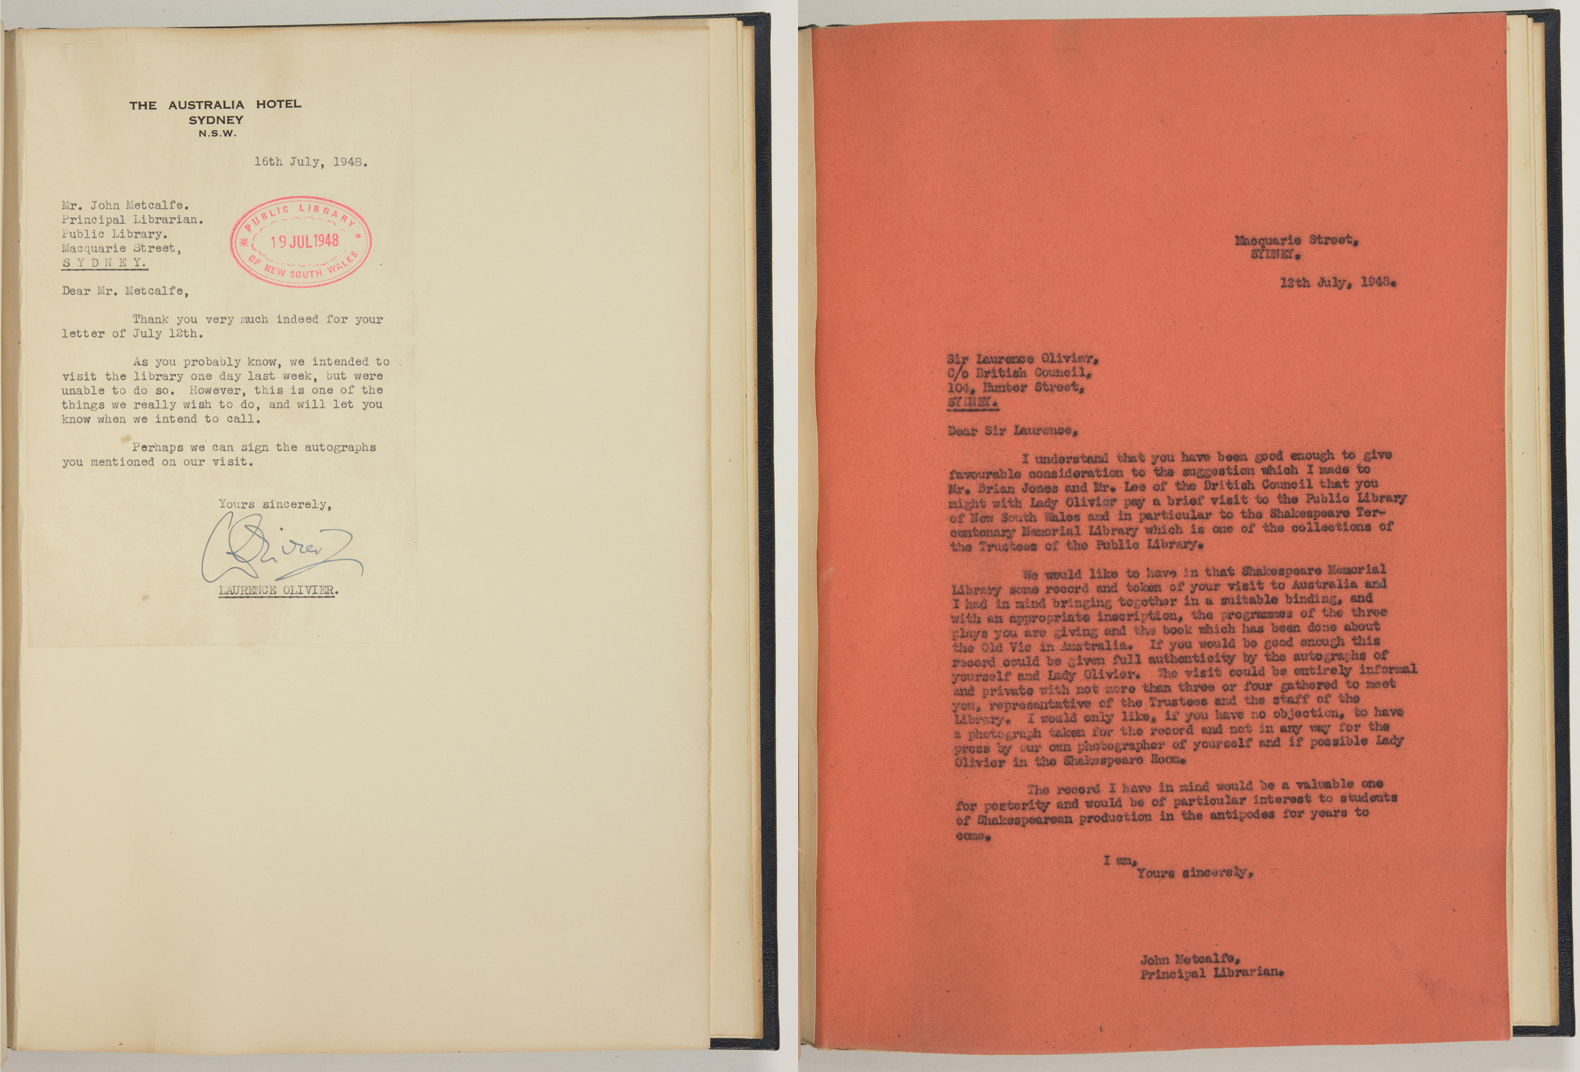 Letters to and from John Metcalfe and Laurence Olivier